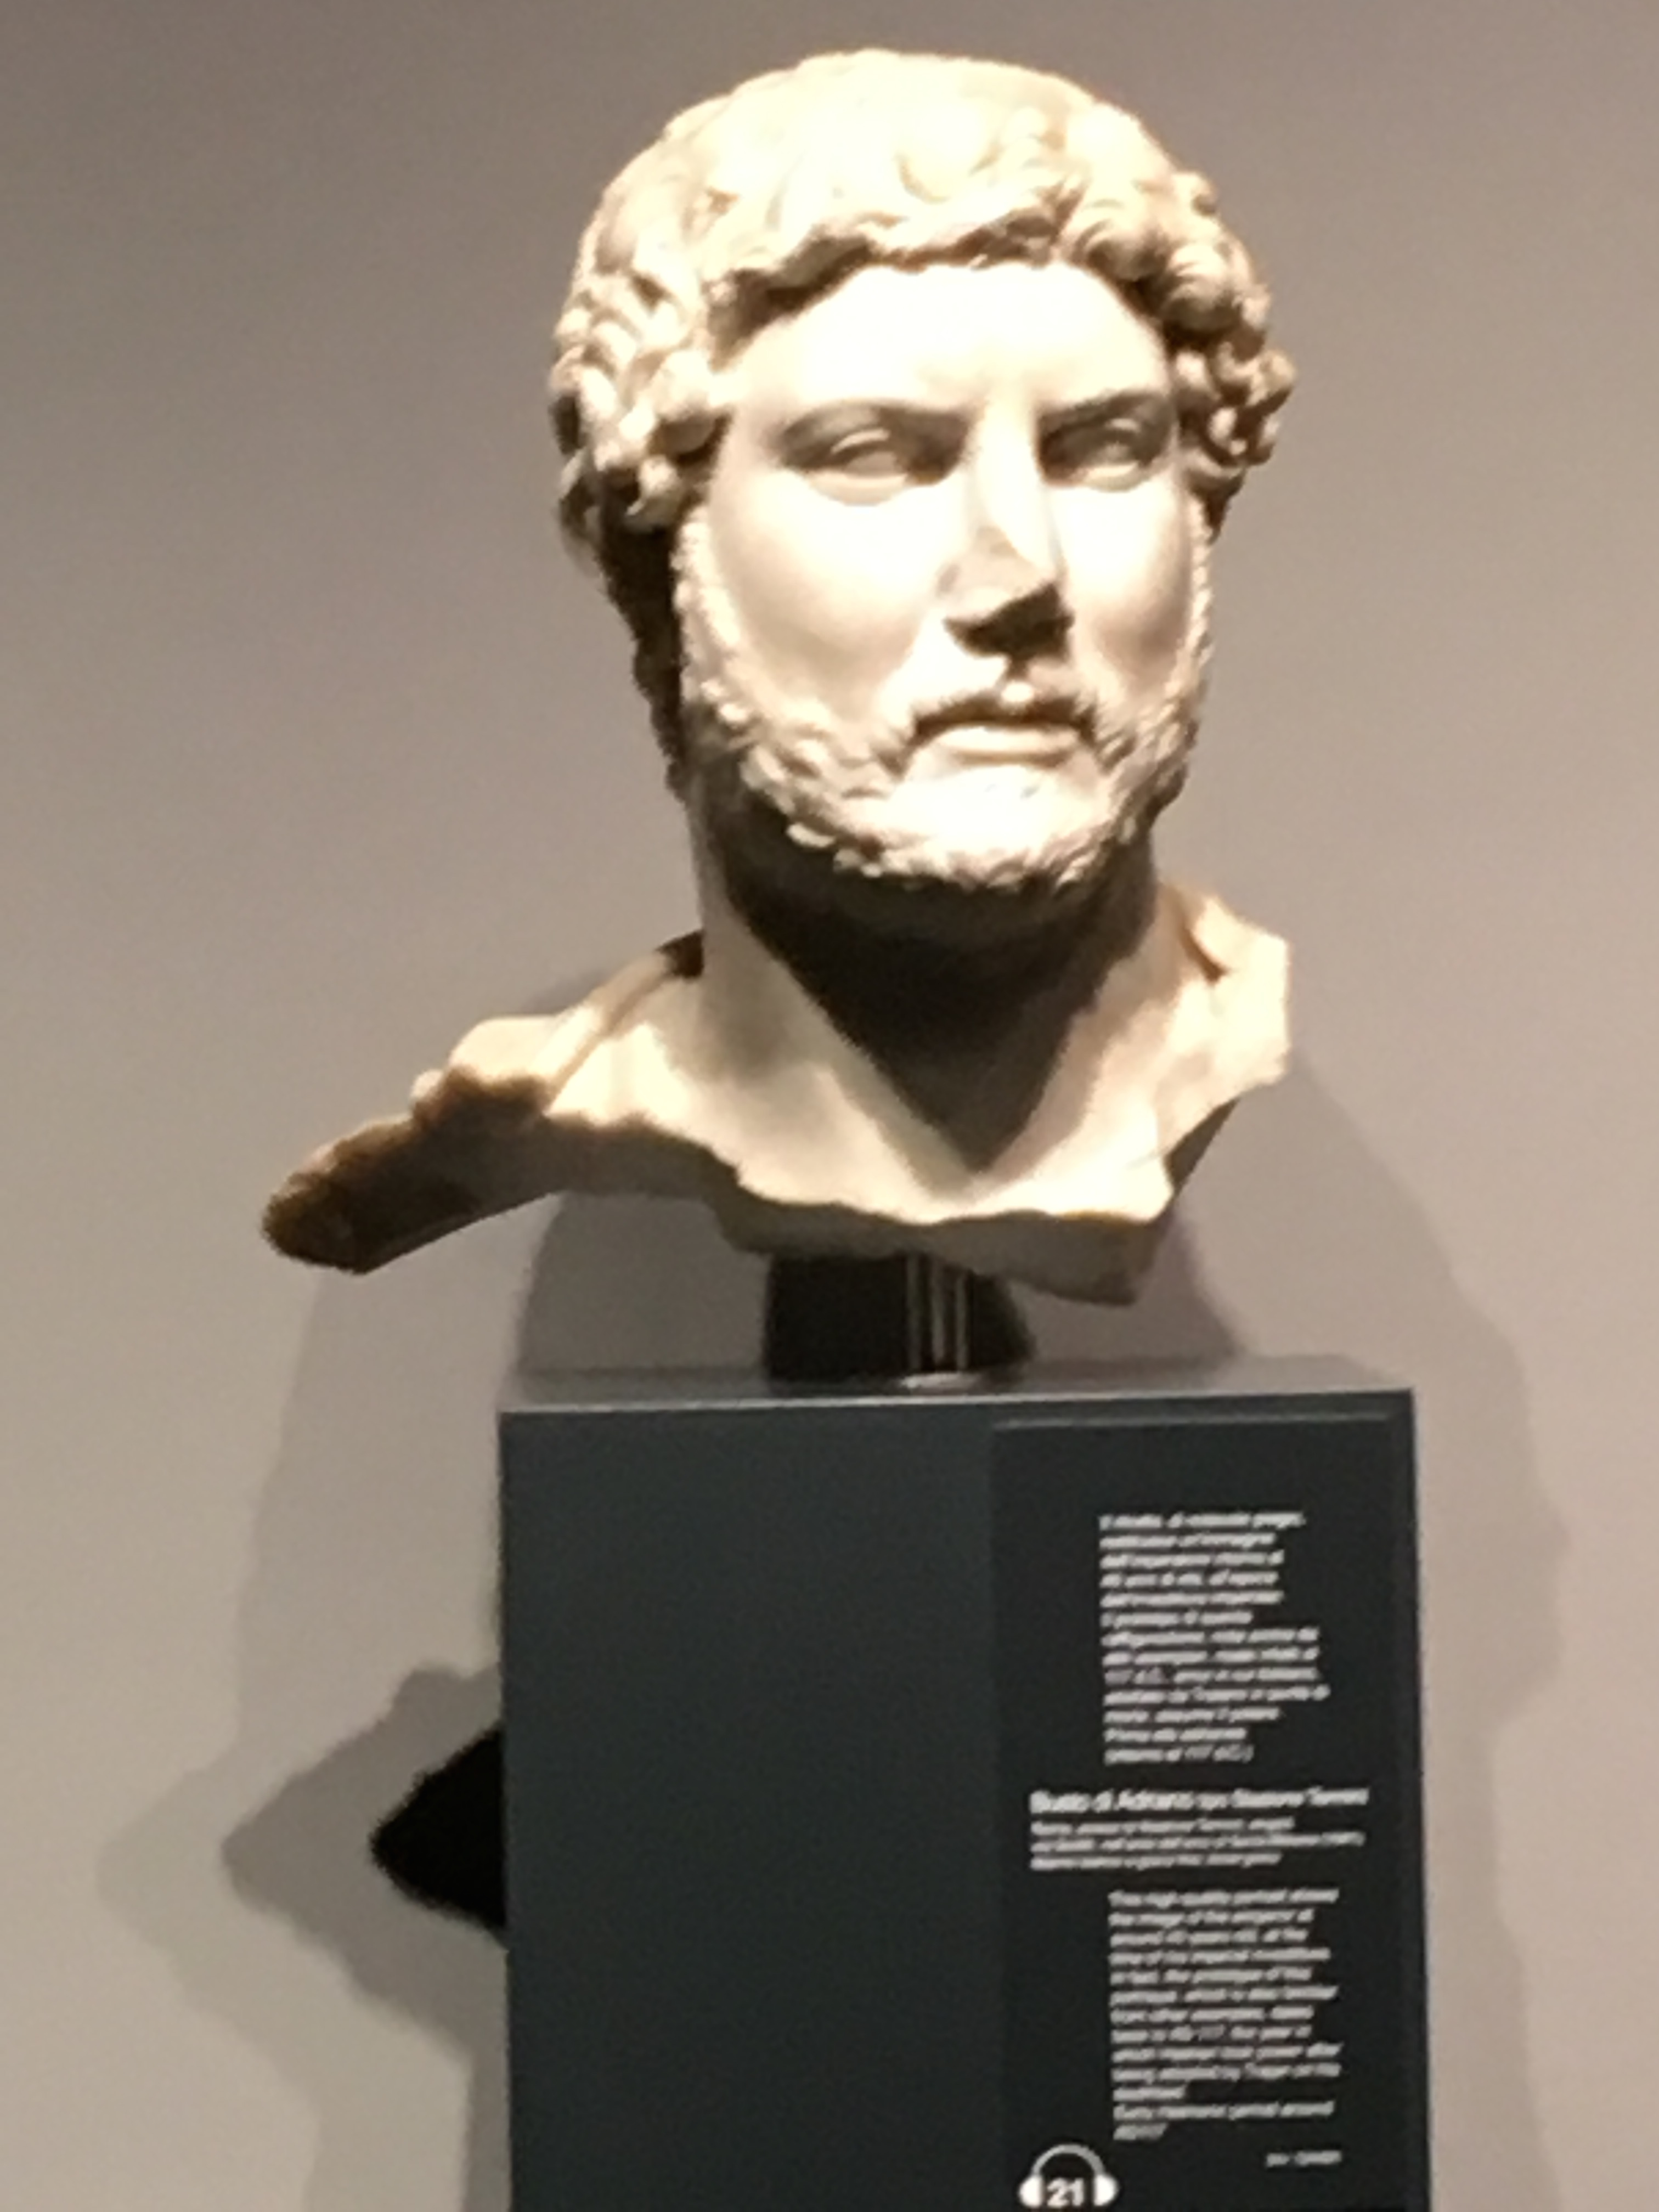 emporer hadrian of rome The adopted son and successor of emperor hadrian  and reassess whether tiberius should be included as one of the top 10 greatest emperors of ancient rome.